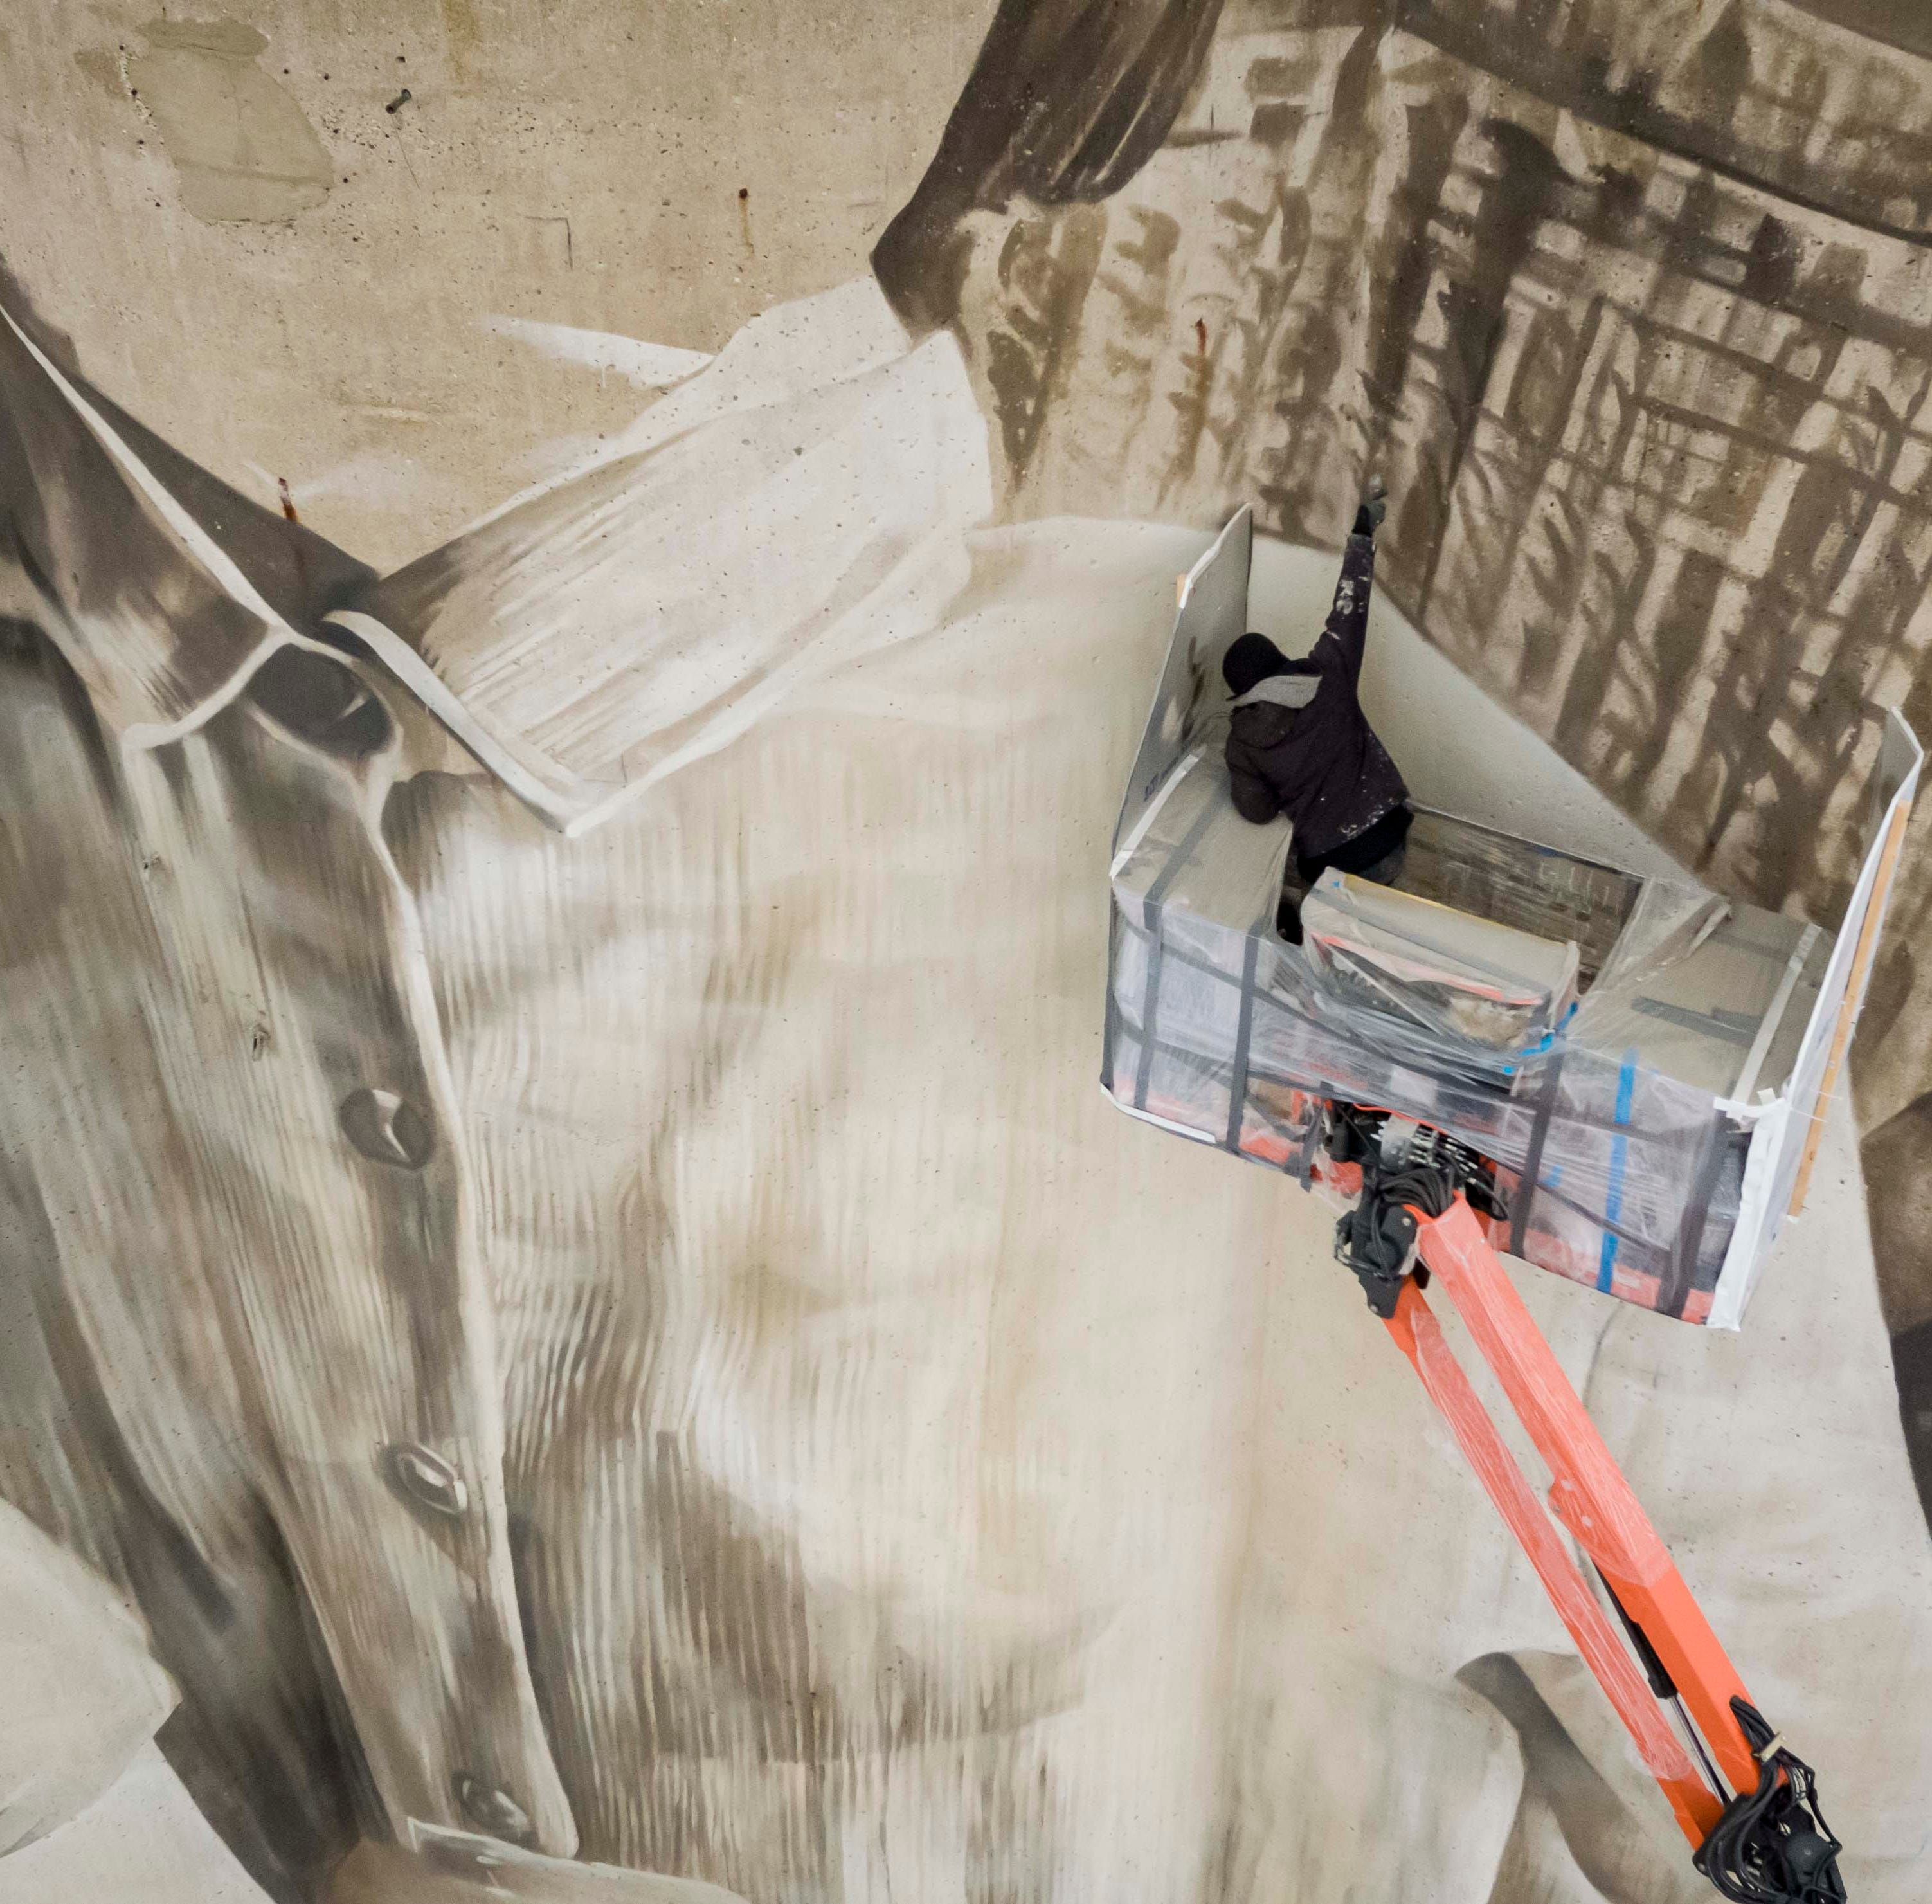 Using a 110-foot silo as his canvas, Australian artist creates Iowa's largest mural